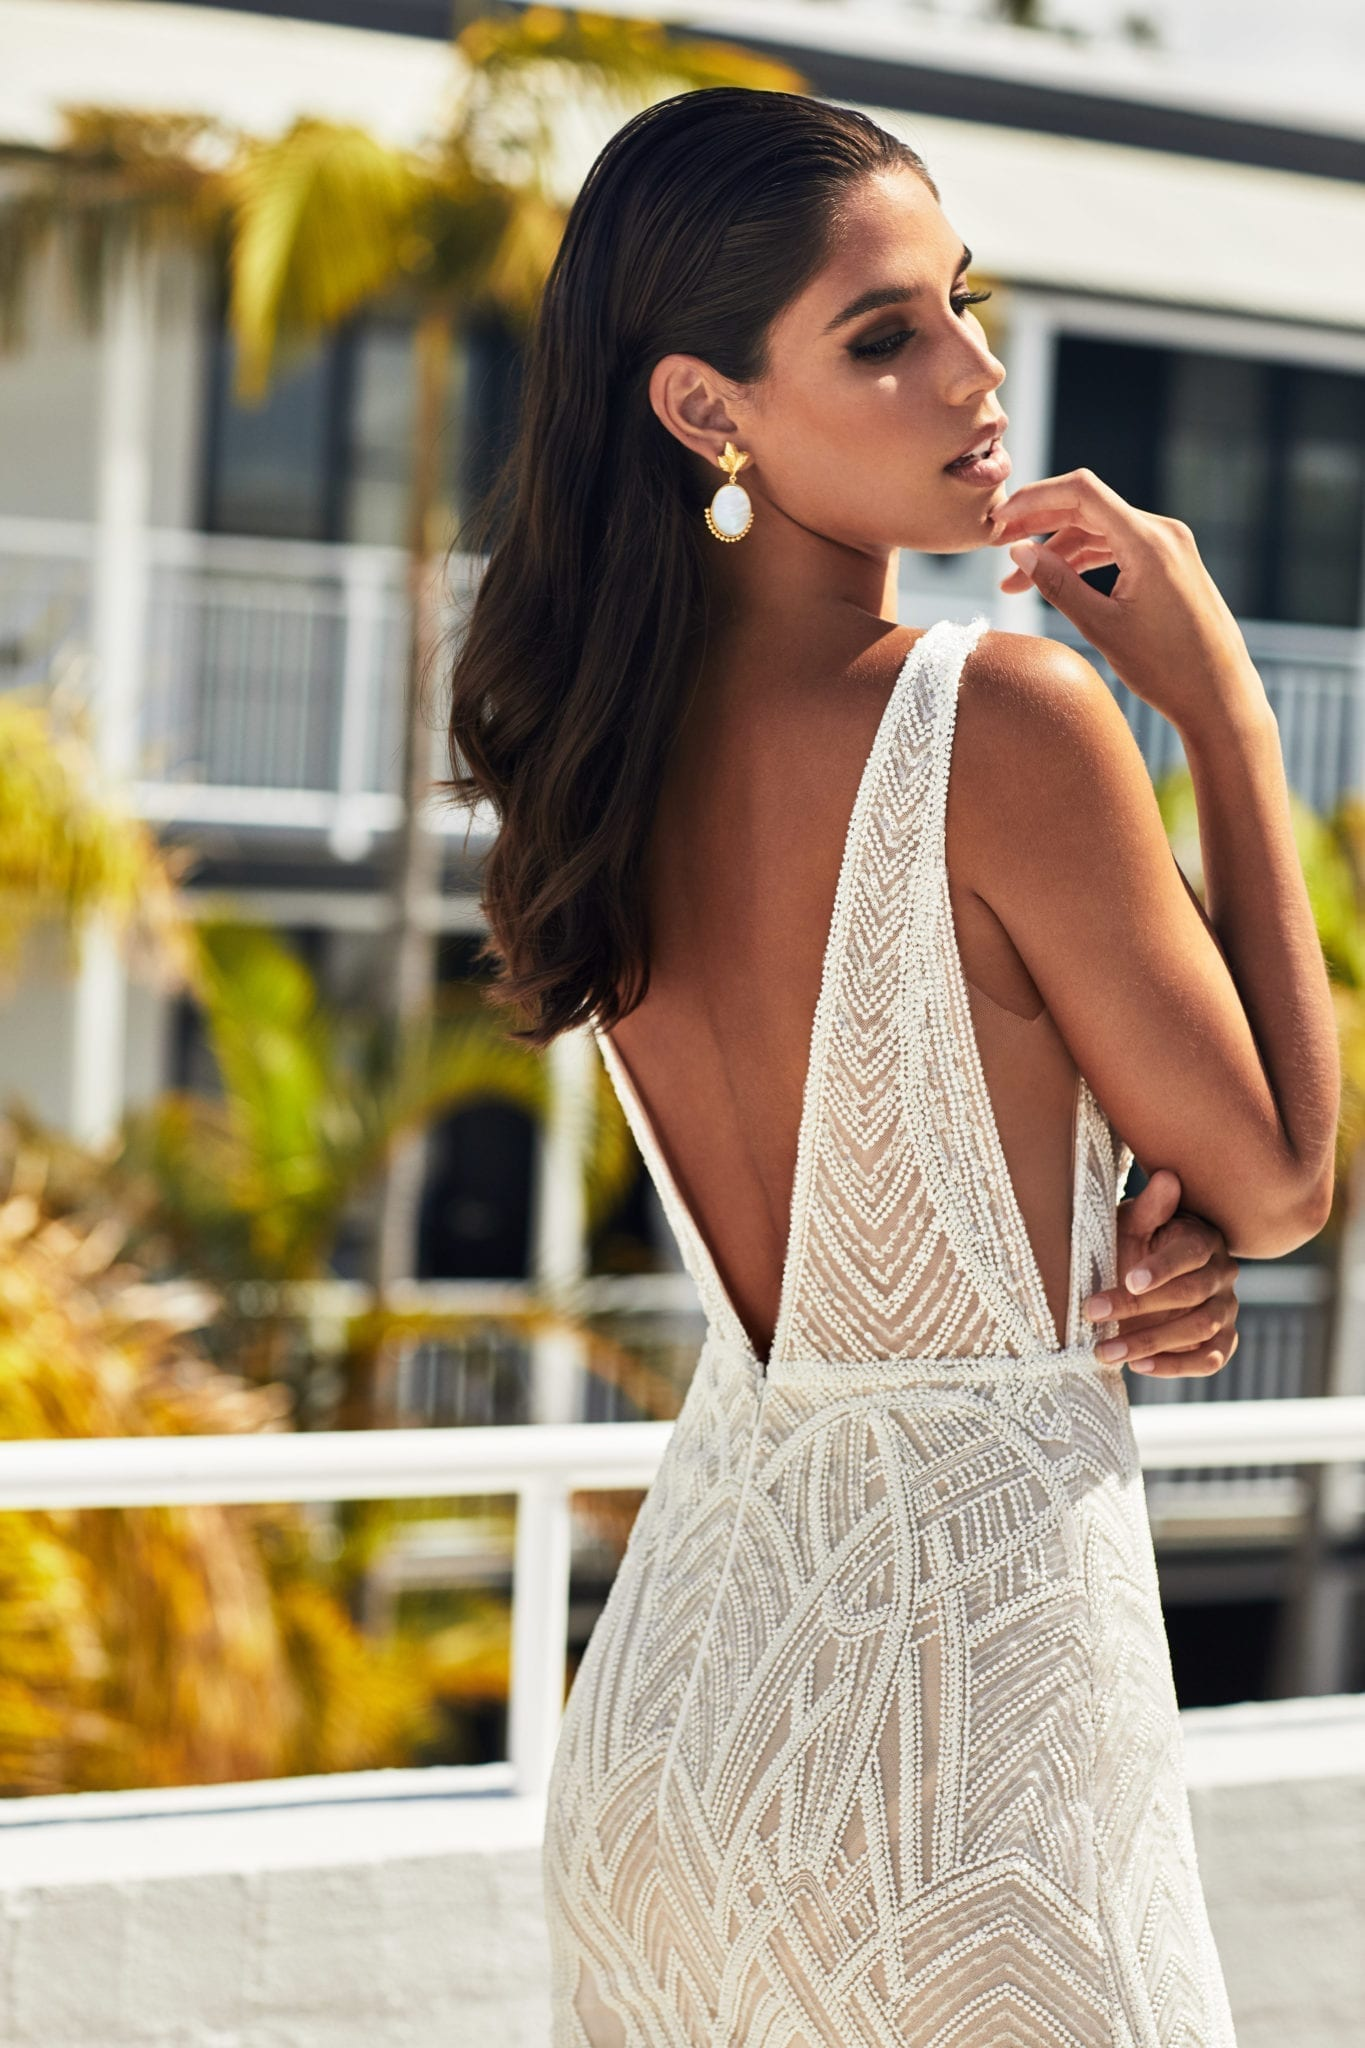 Low back wedding dresses Brisbane